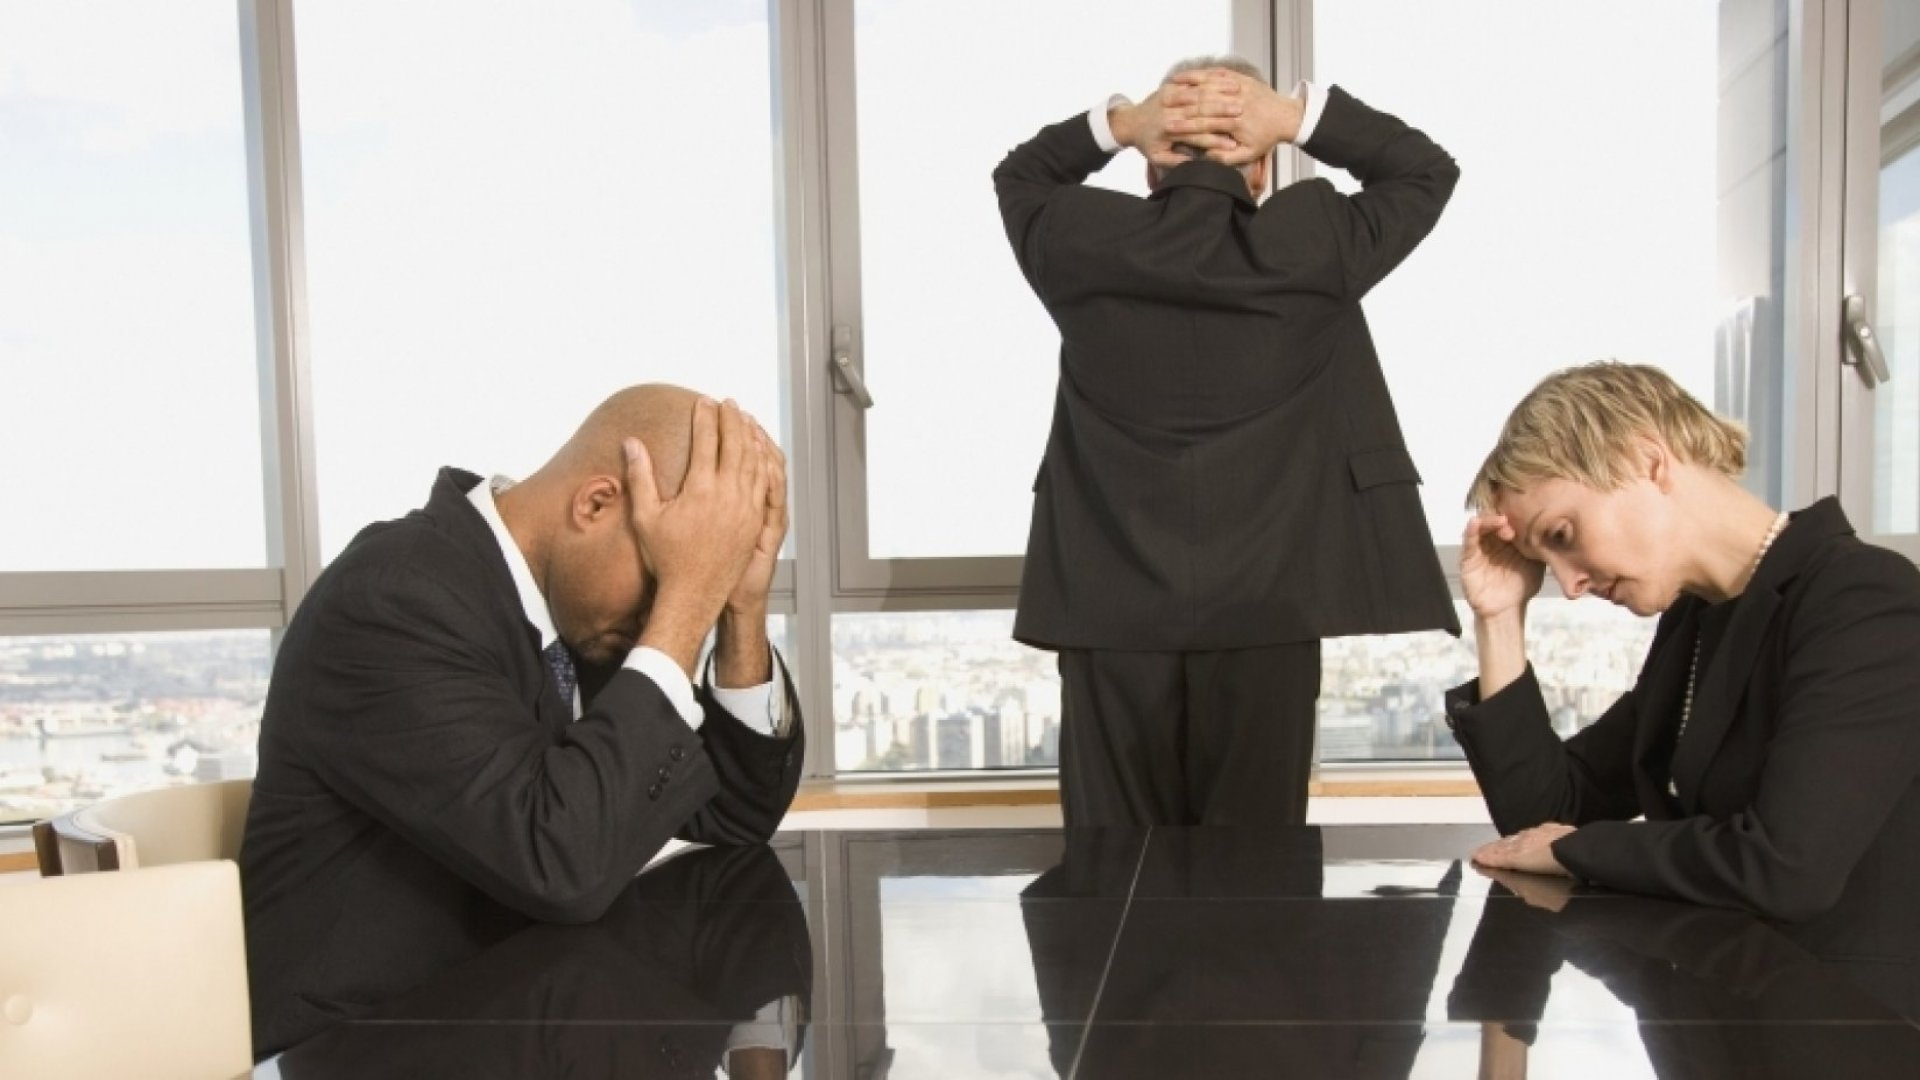 4 Mistakes That Will Ruin Any Meeting